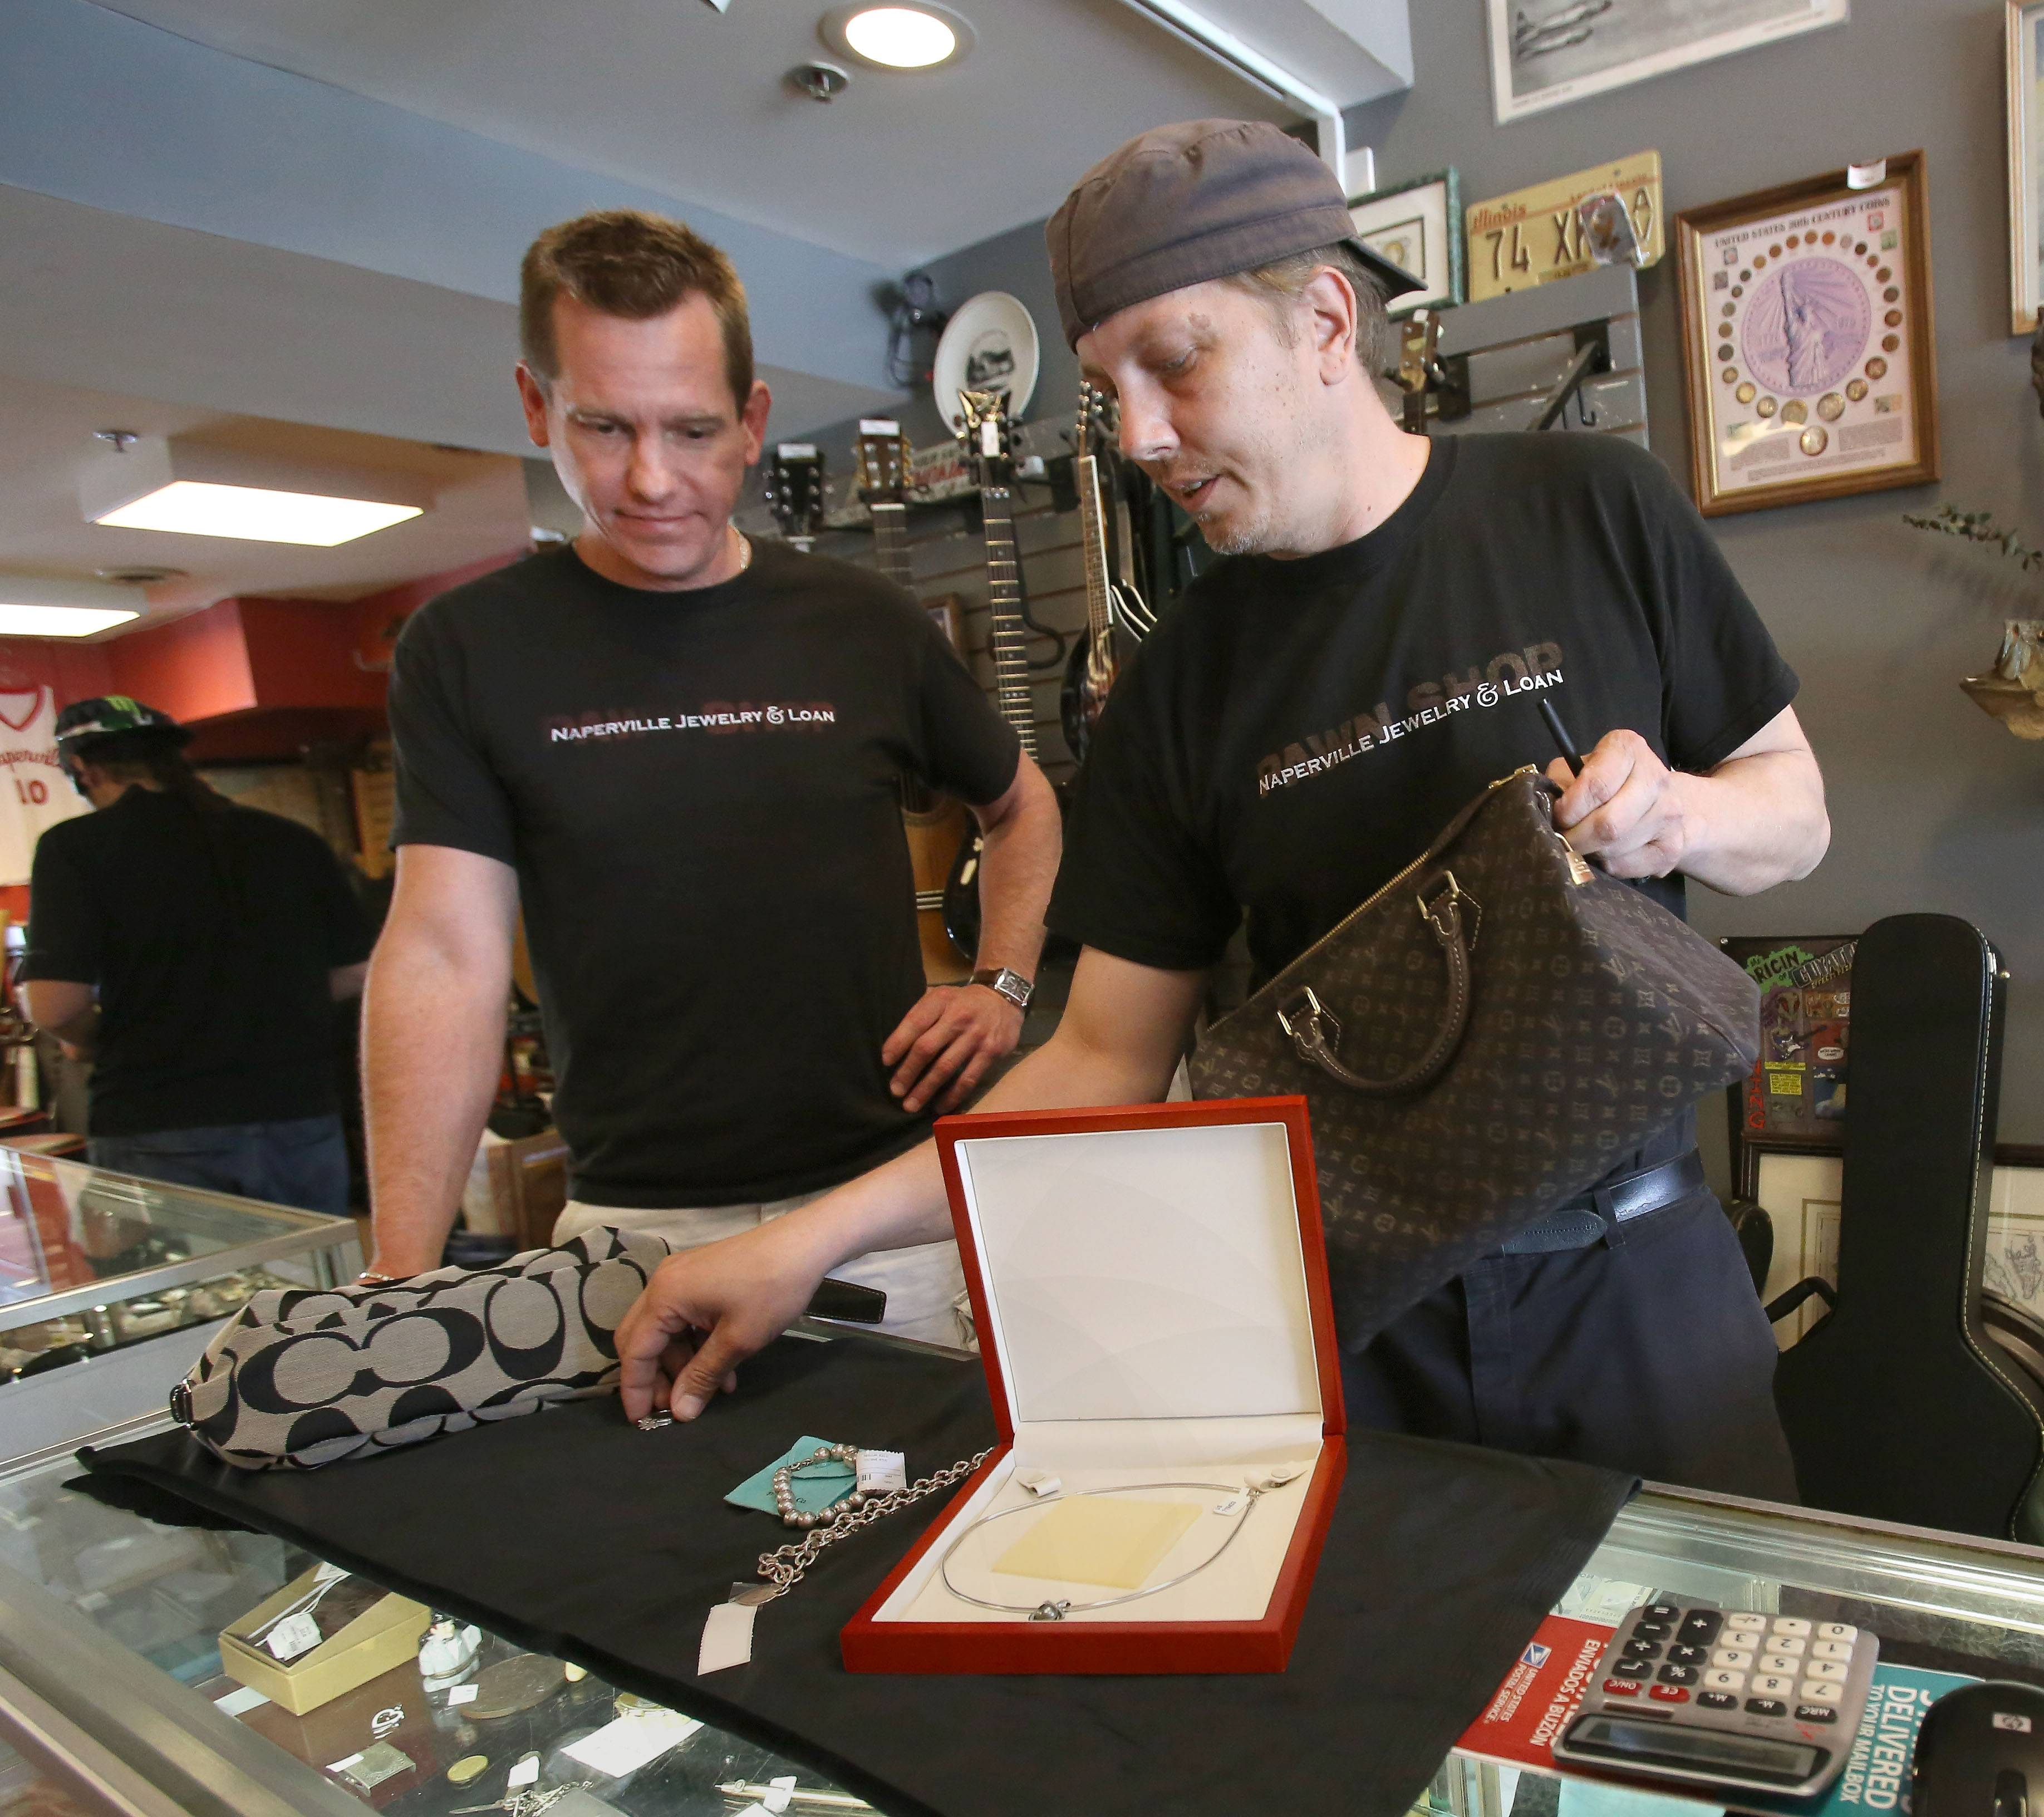 Naperville mulling regulations to help find stolen jewelry